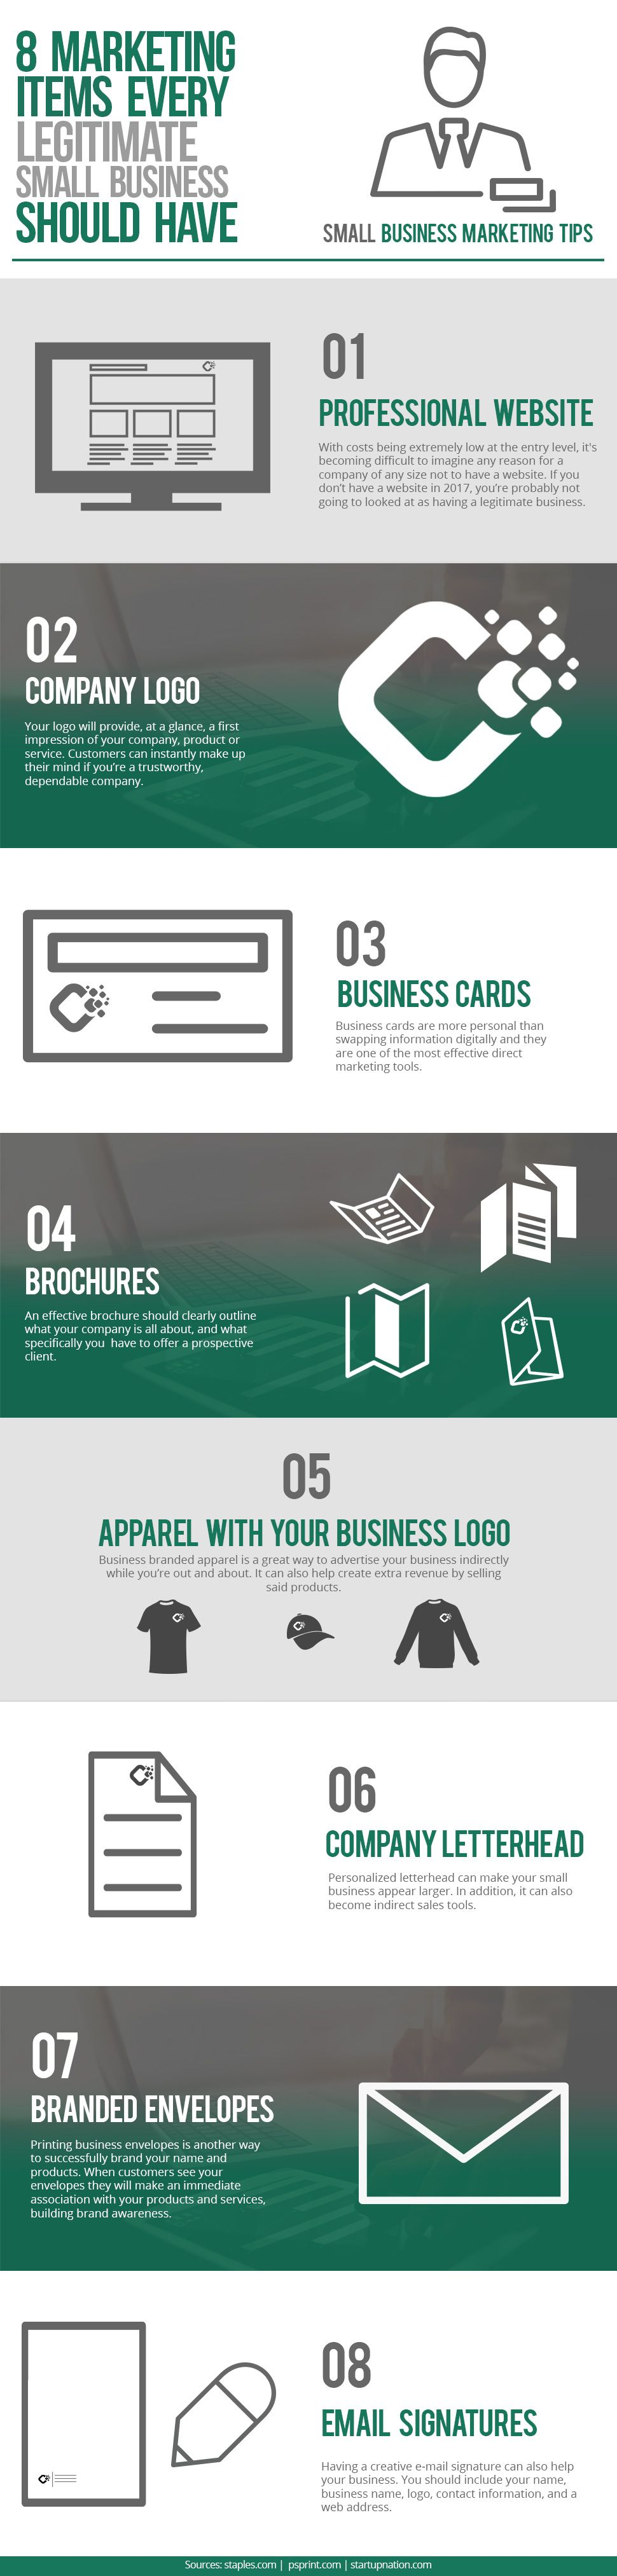 8 Marketing Items Every Legitimate Small Business Should Have #Infographic